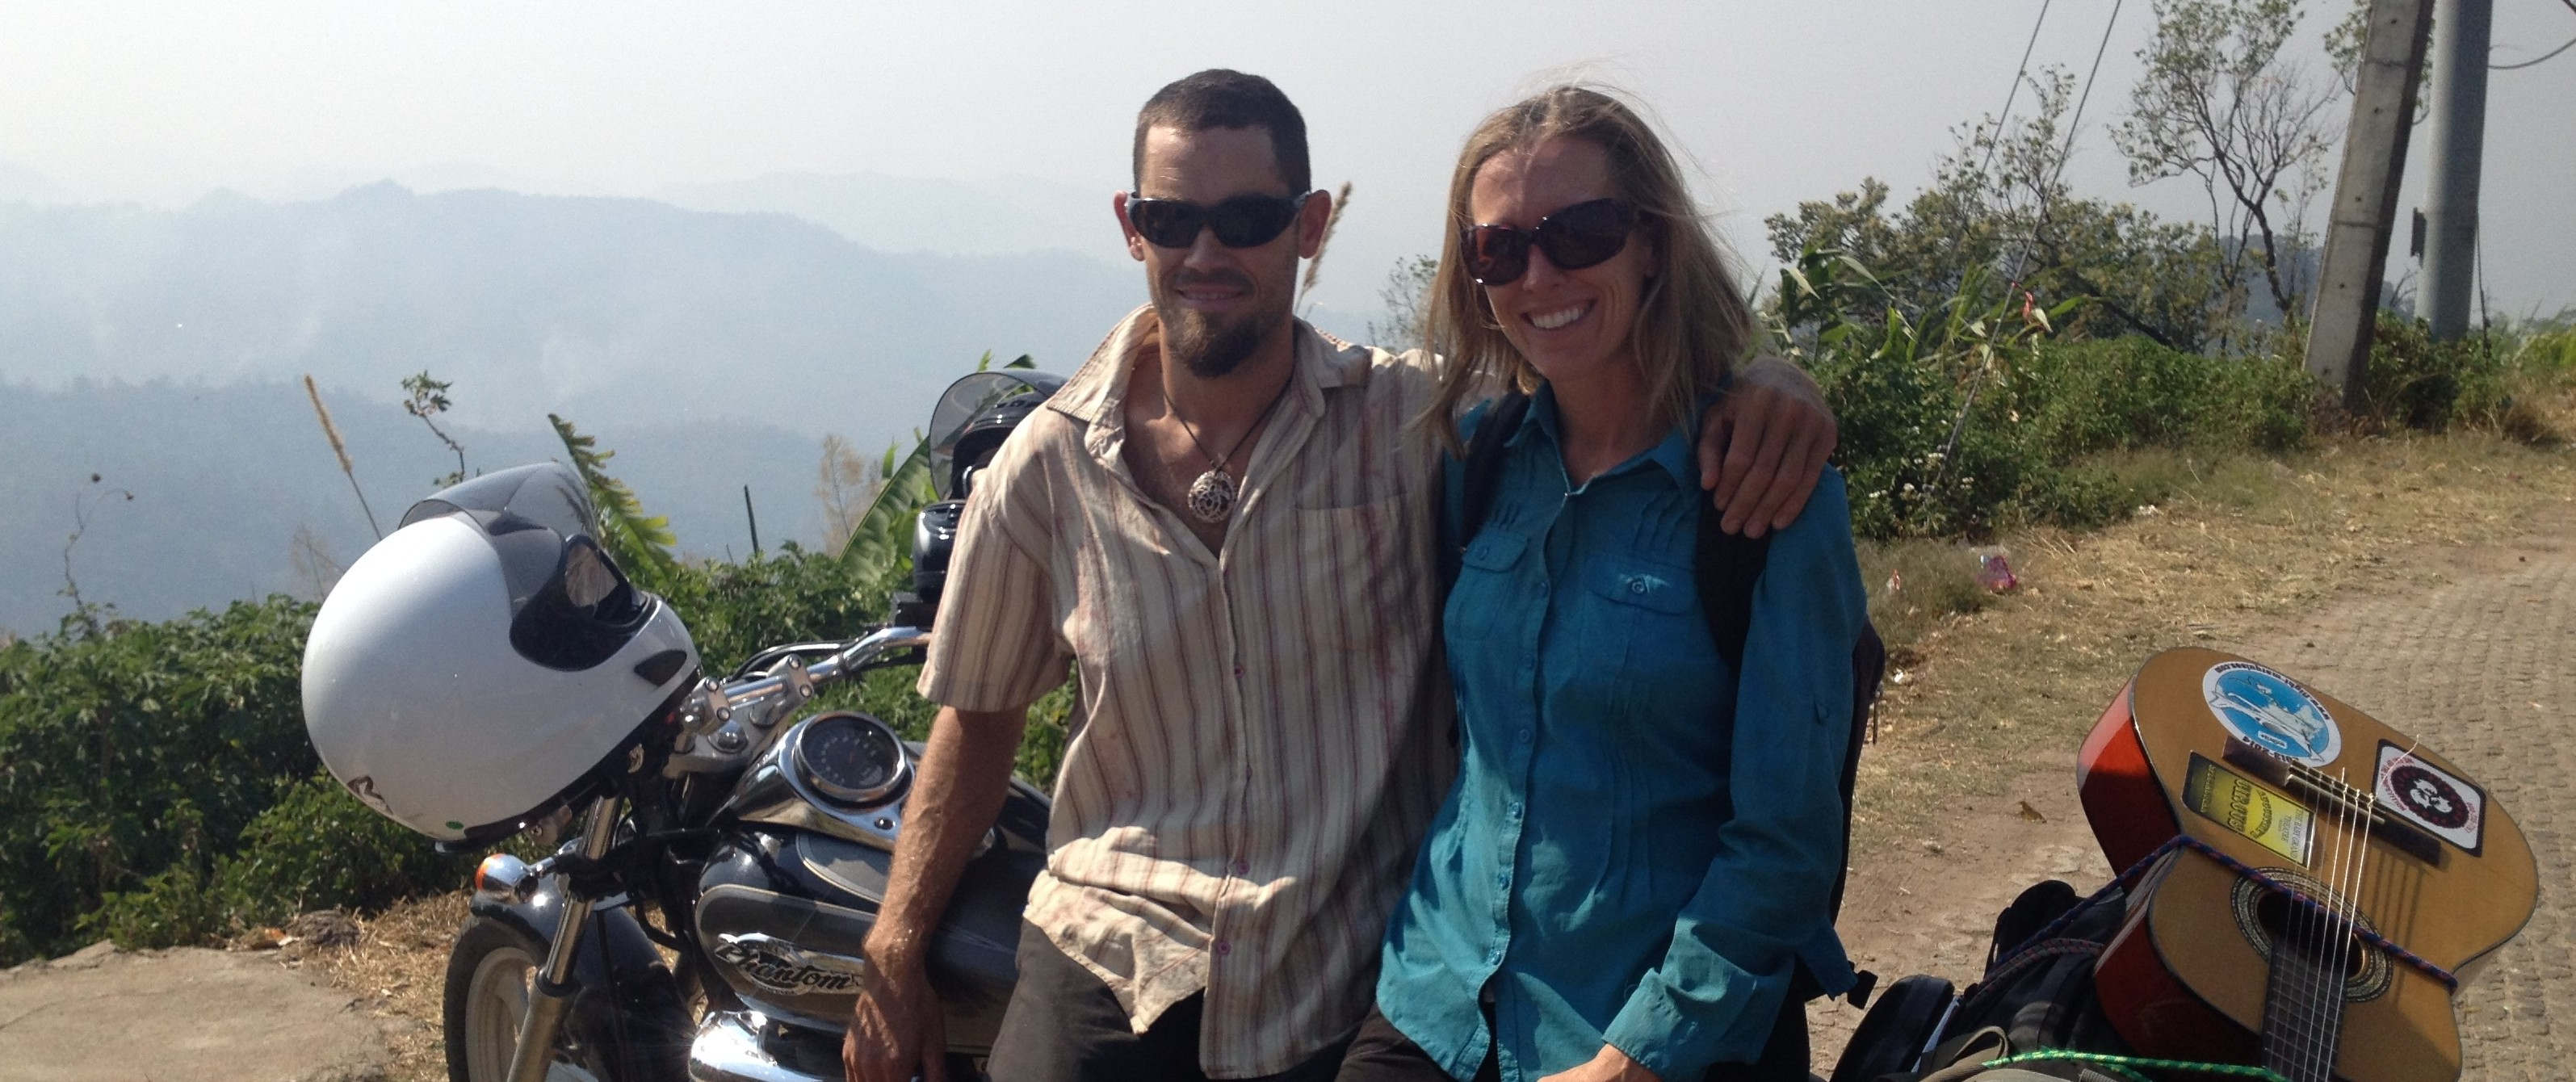 Brianna Randall and Rob Roberts on motorcycle through Thailand's Mae Hong Son Loop. On the Horizon Line travel blog.